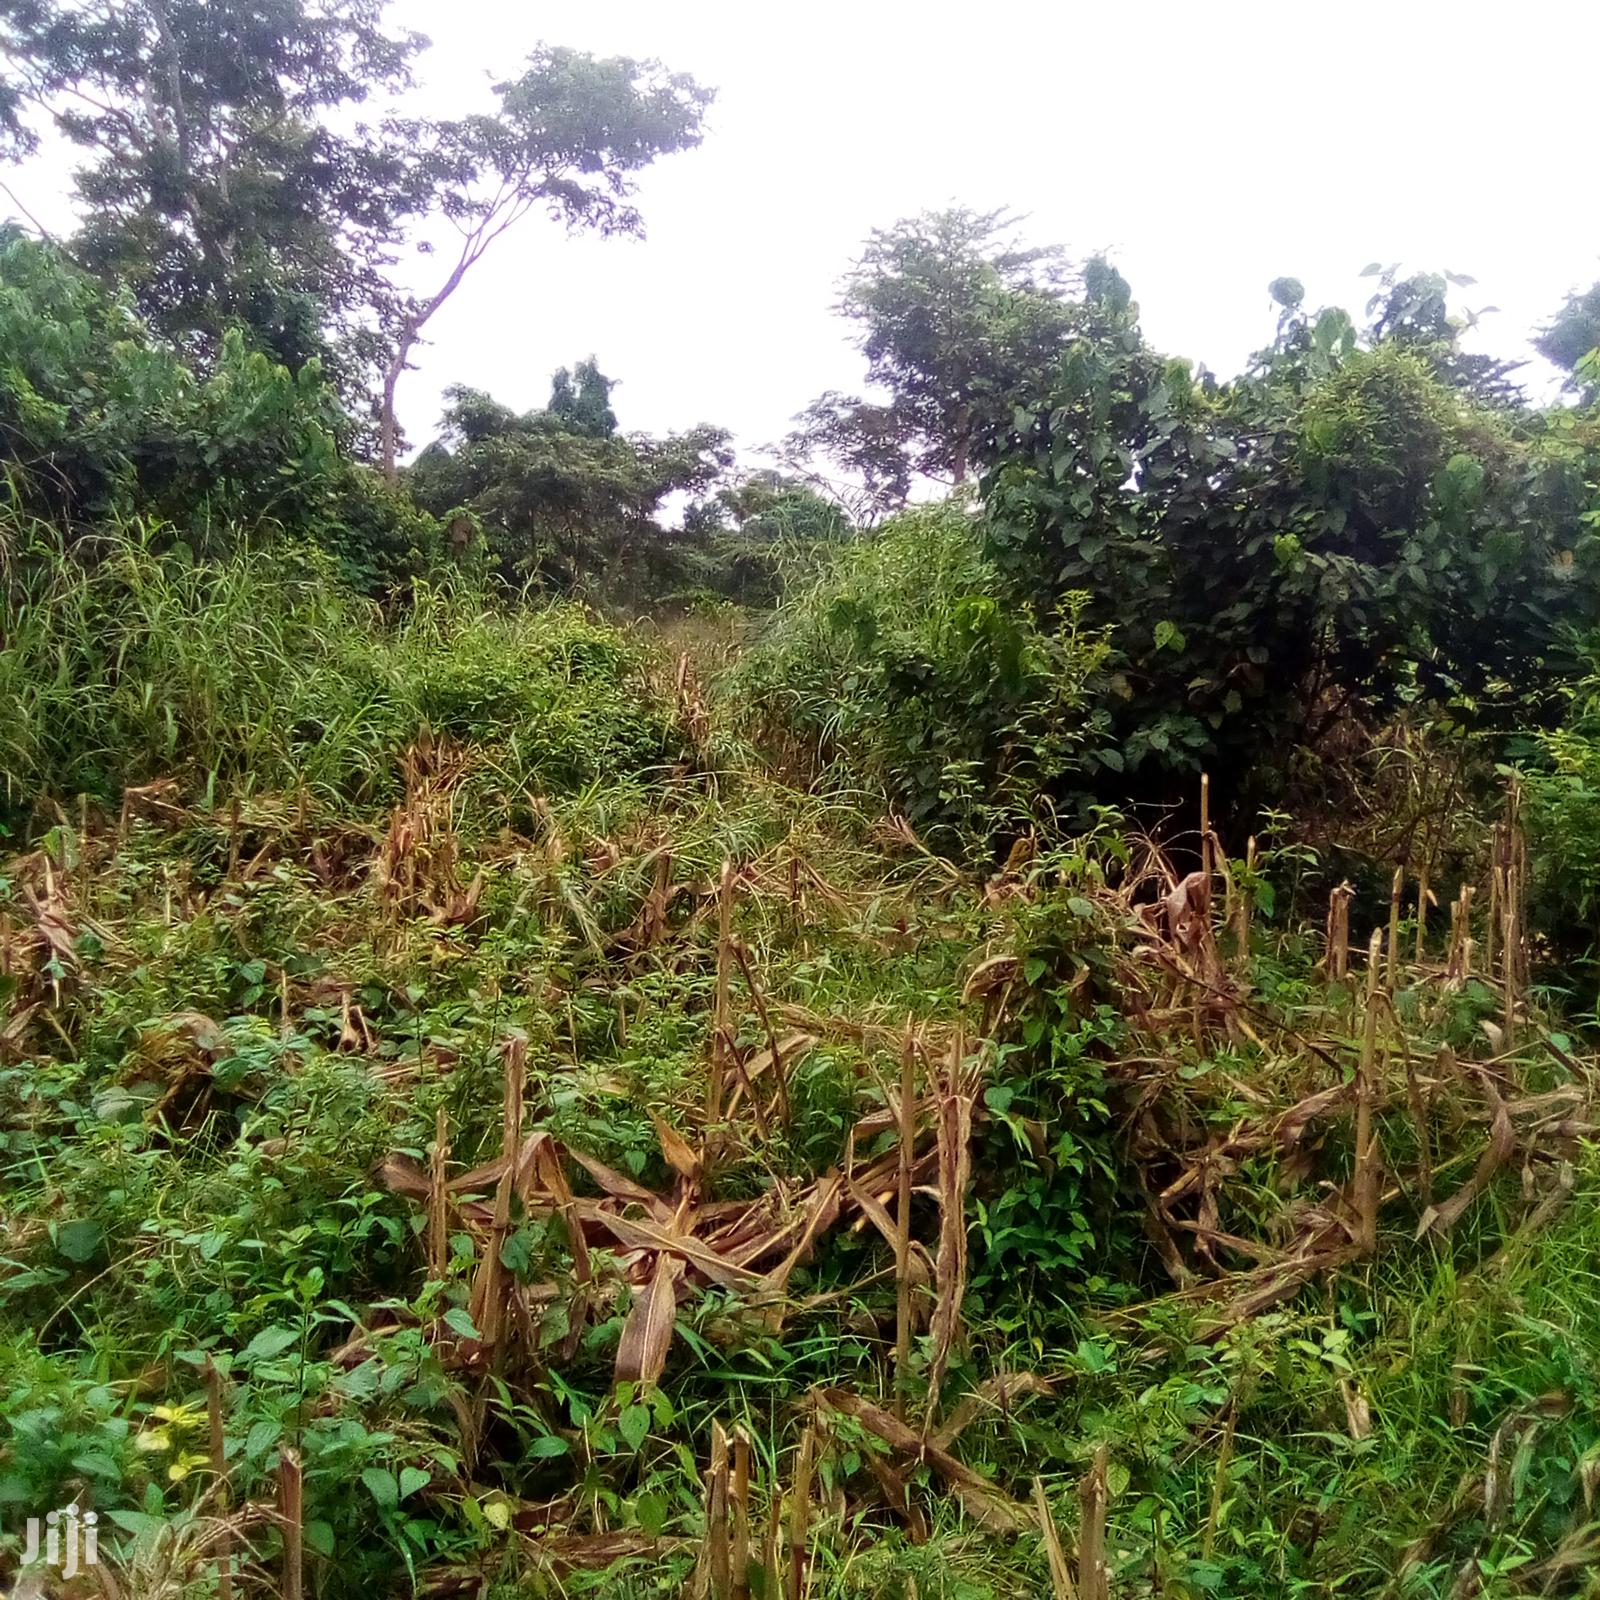 Archive: Farmland for Sale at Affordable Price.